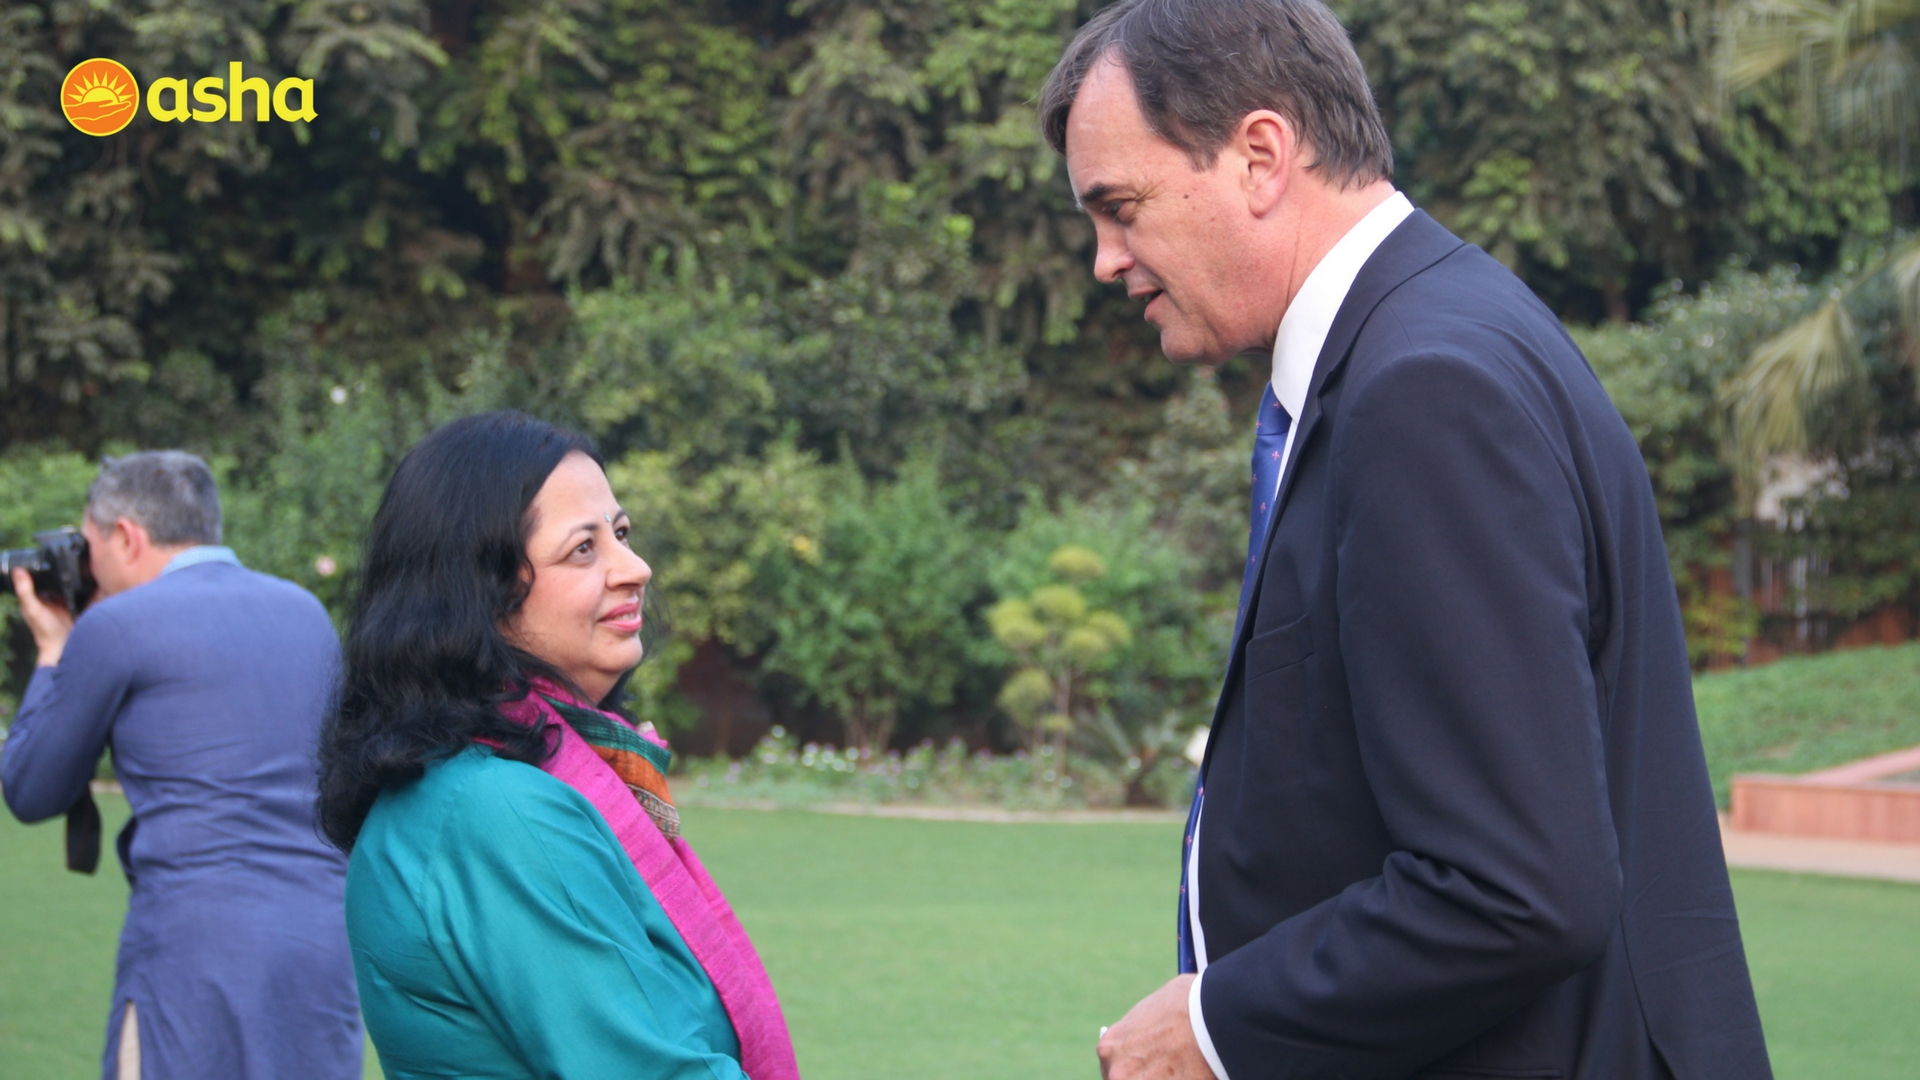 The Honourable High Commissioner seen here with Dr. Kiran enquiring about the recent developments taking place at Asha.